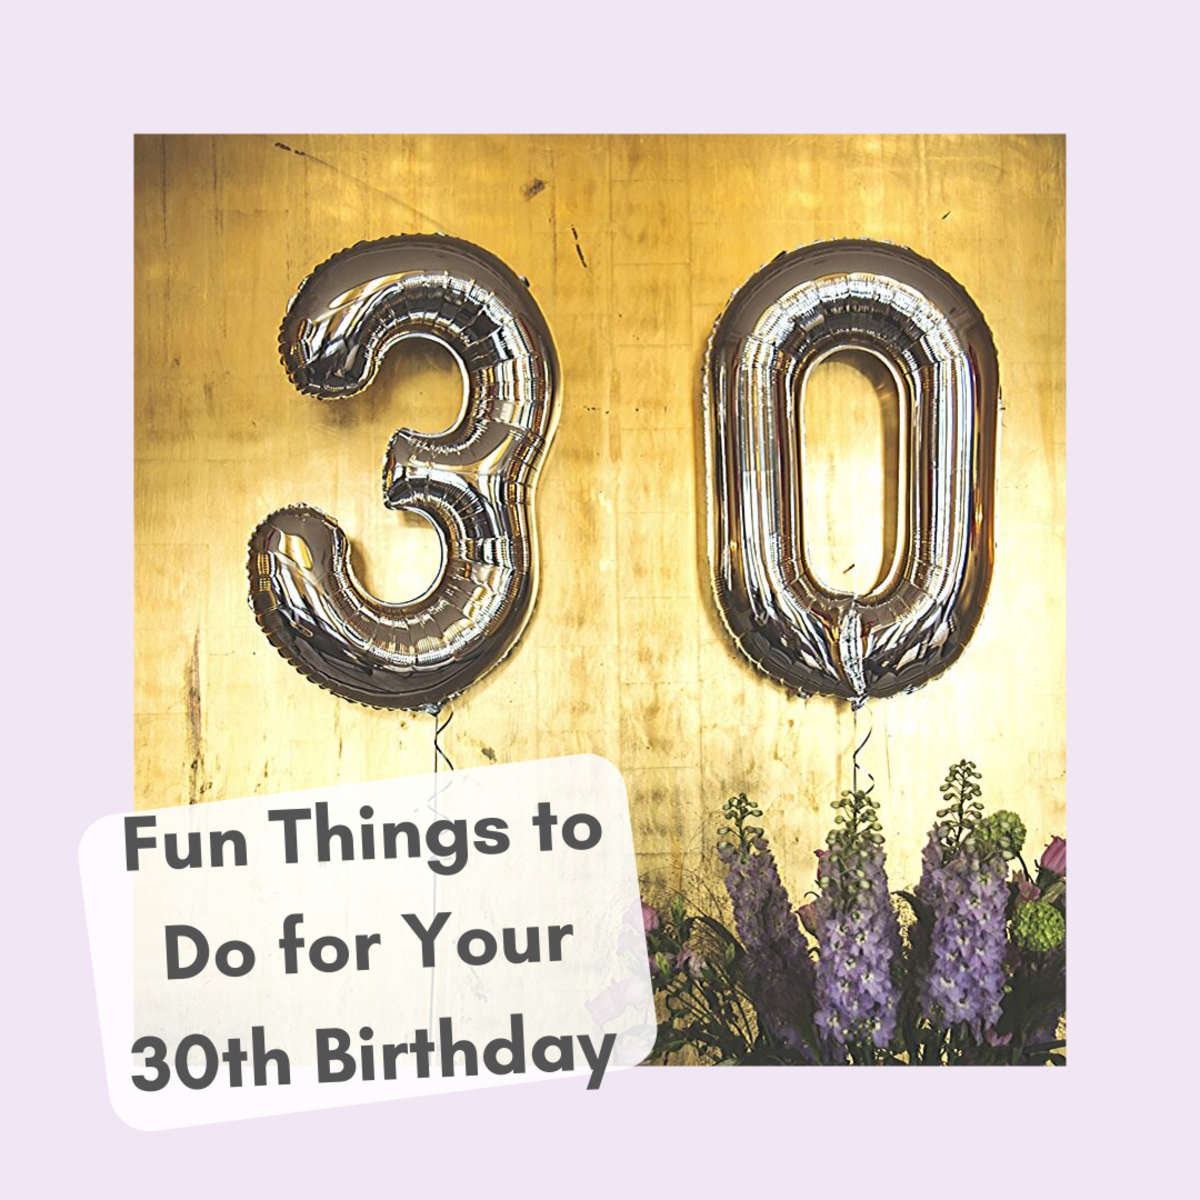 Celebrate Your 30th Birthday